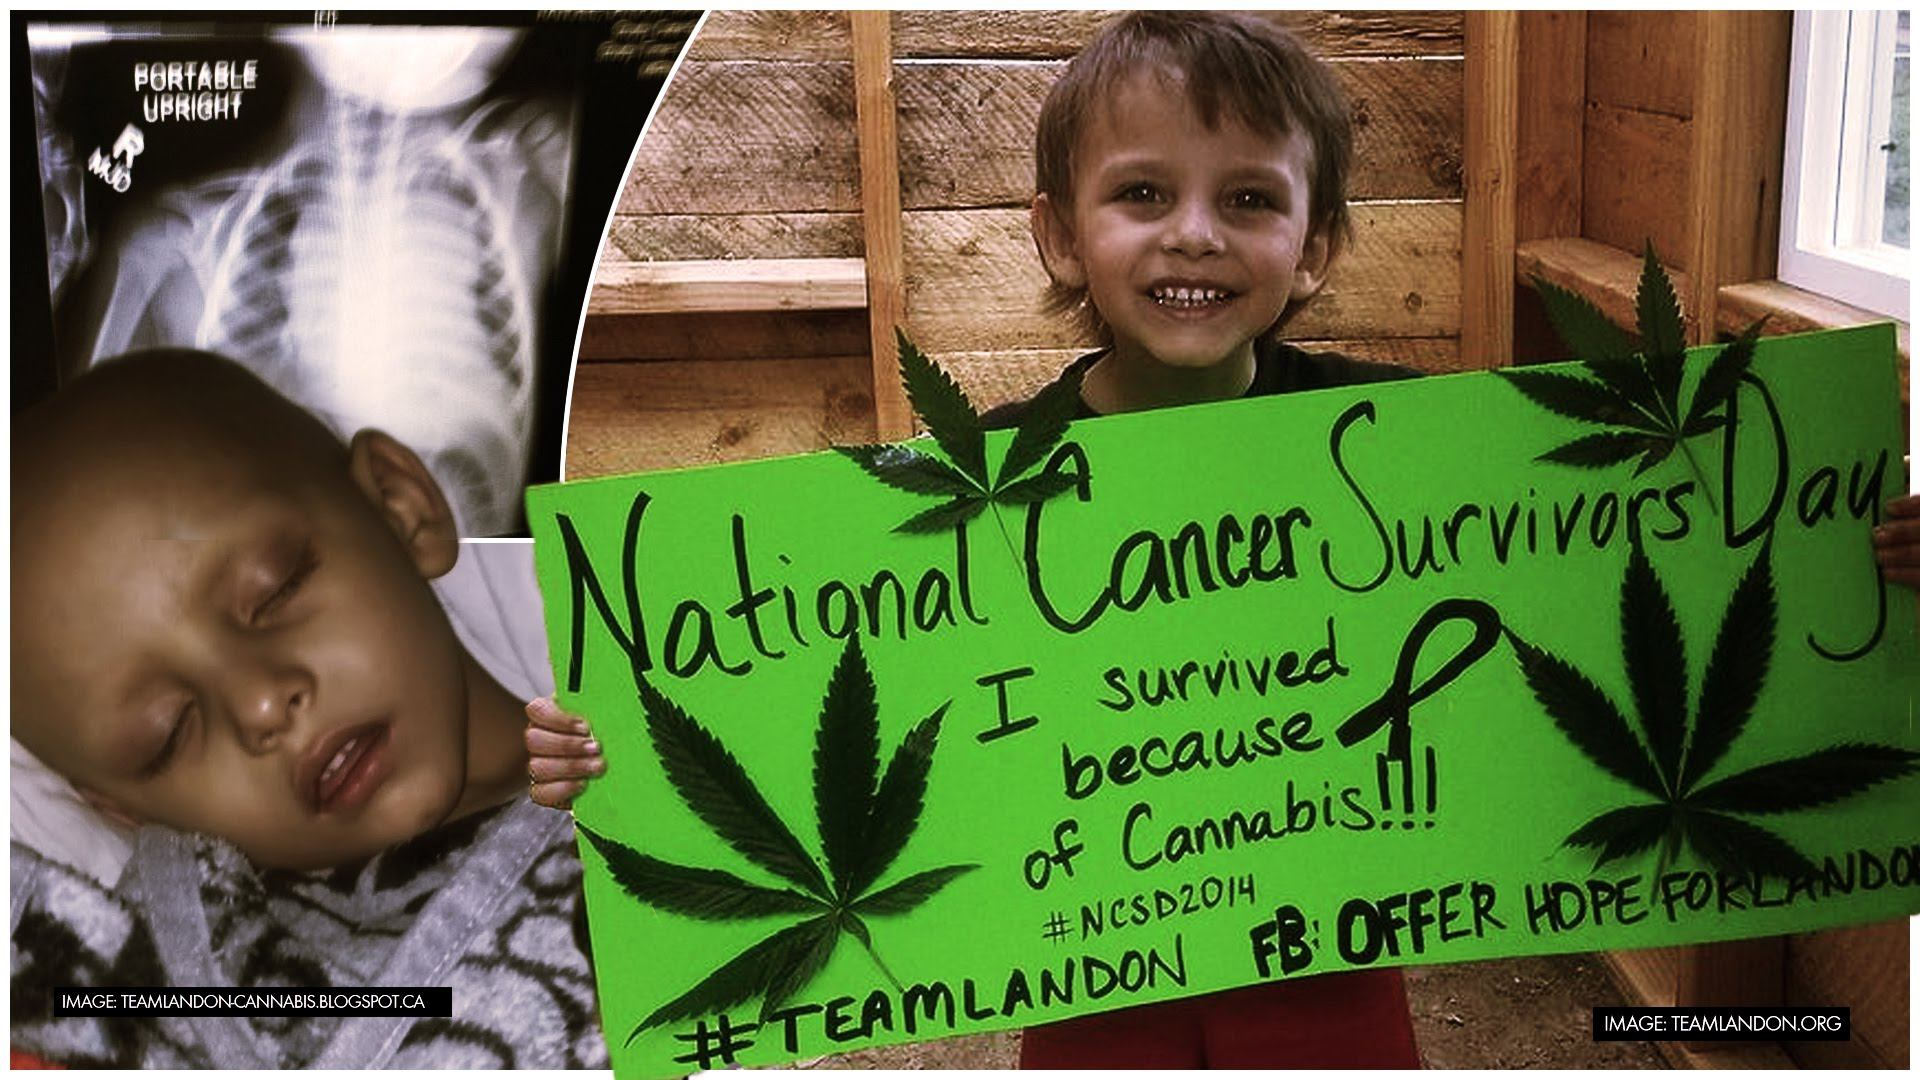 Cannabis Oil Cures Cancer: Boy(3) Who Had 2 Days To Live! image from YouTube